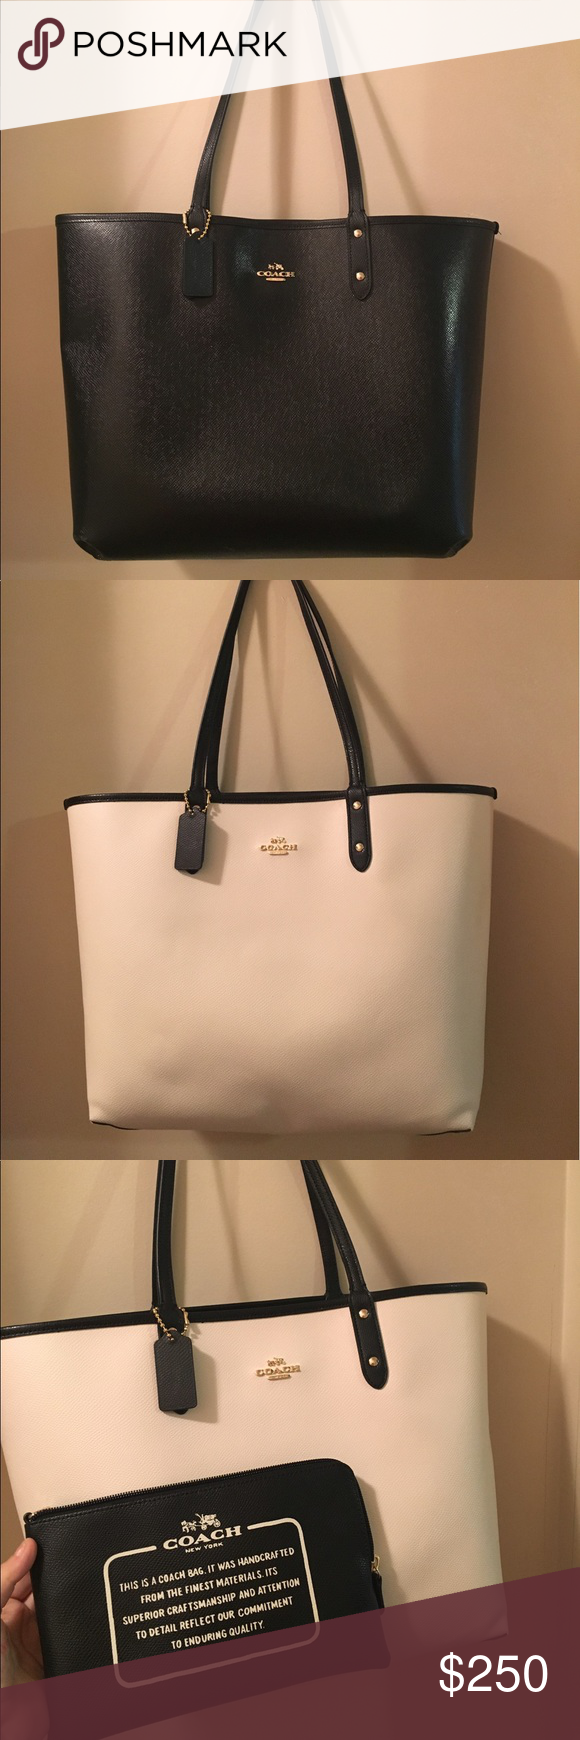 75a1c1ec1f 3 in 1 coach reversible tote Beautiful white and black leather tote bag  that is reversible